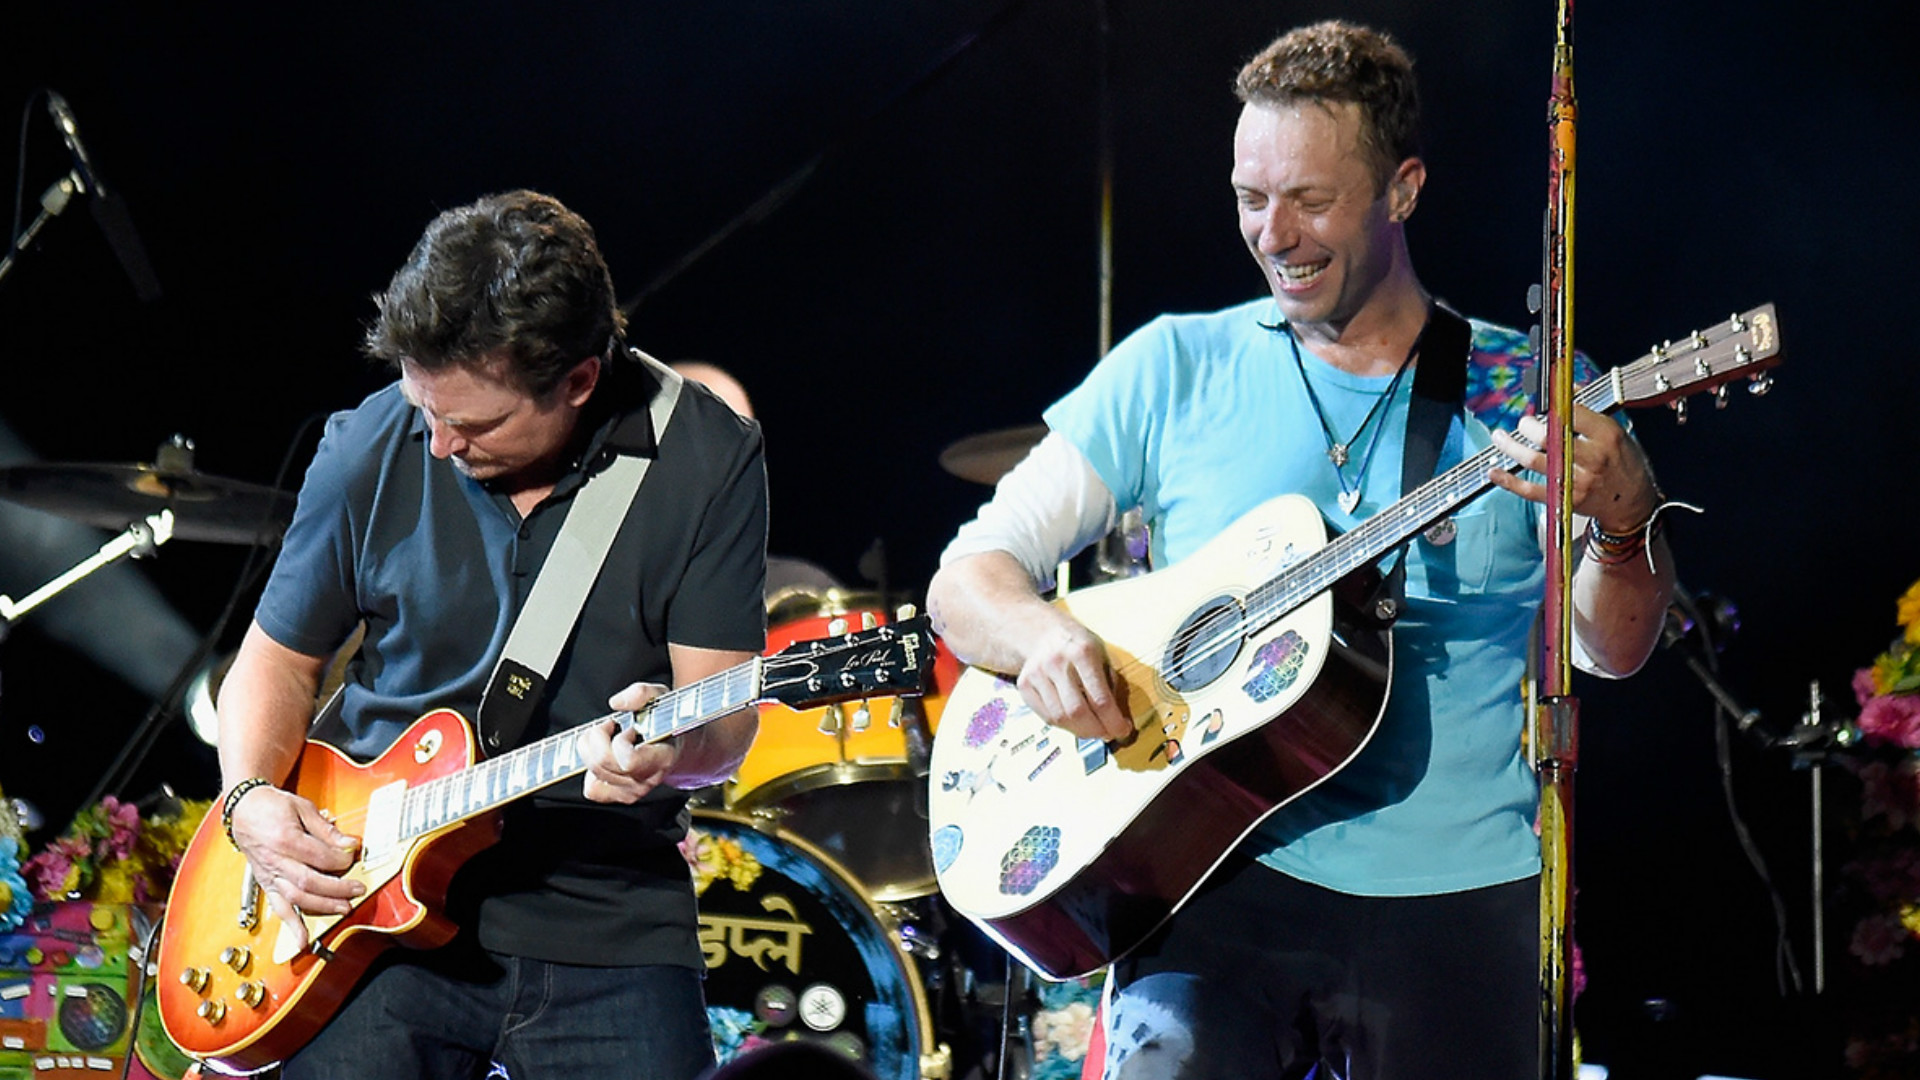 Michael J Fox and Chris Martin perform Johnny B Goode